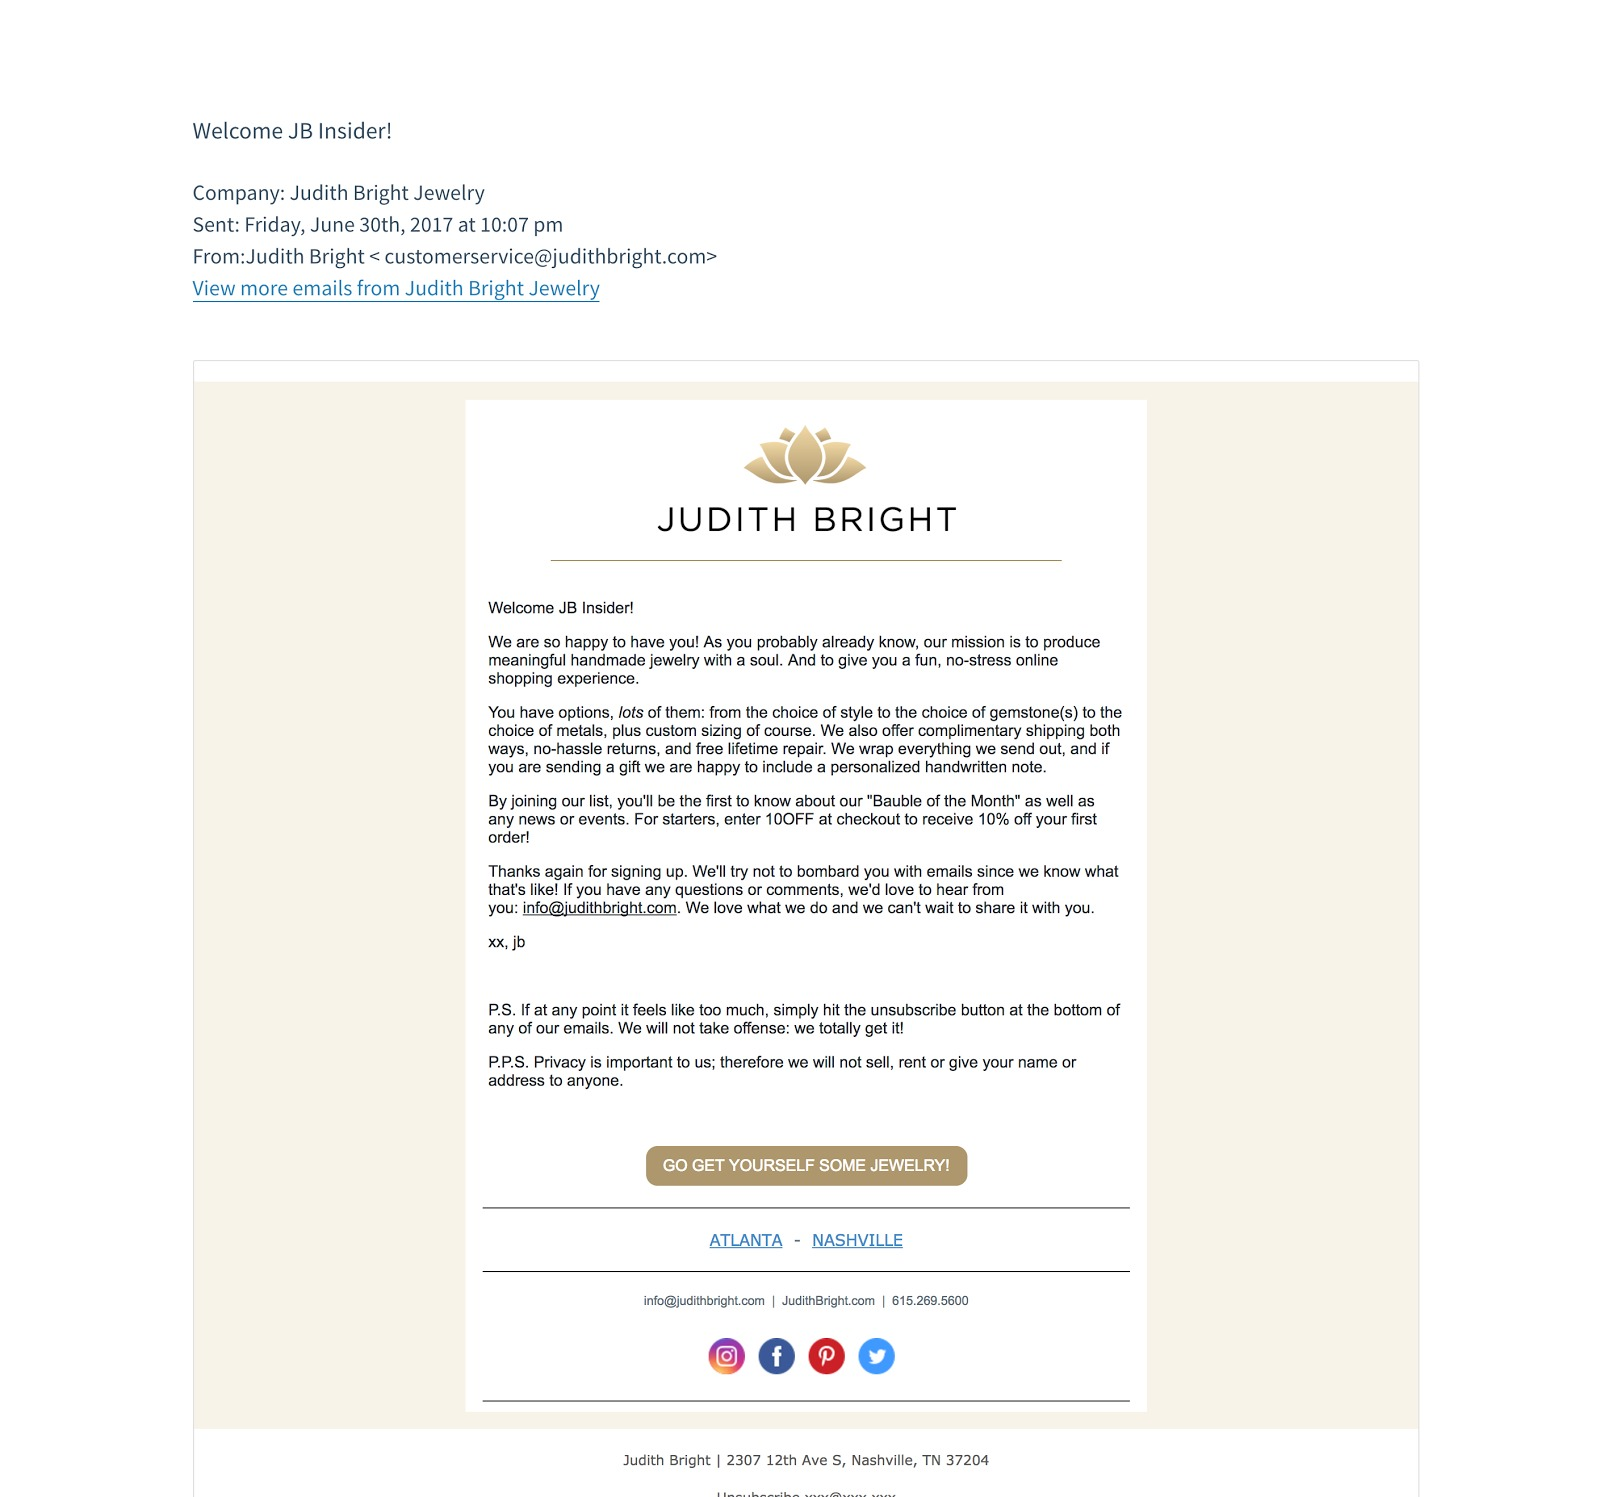 Clear Channel Account Executive Cover Letter 11 Welcome Email Template Examples That Grow Sales From Day 1